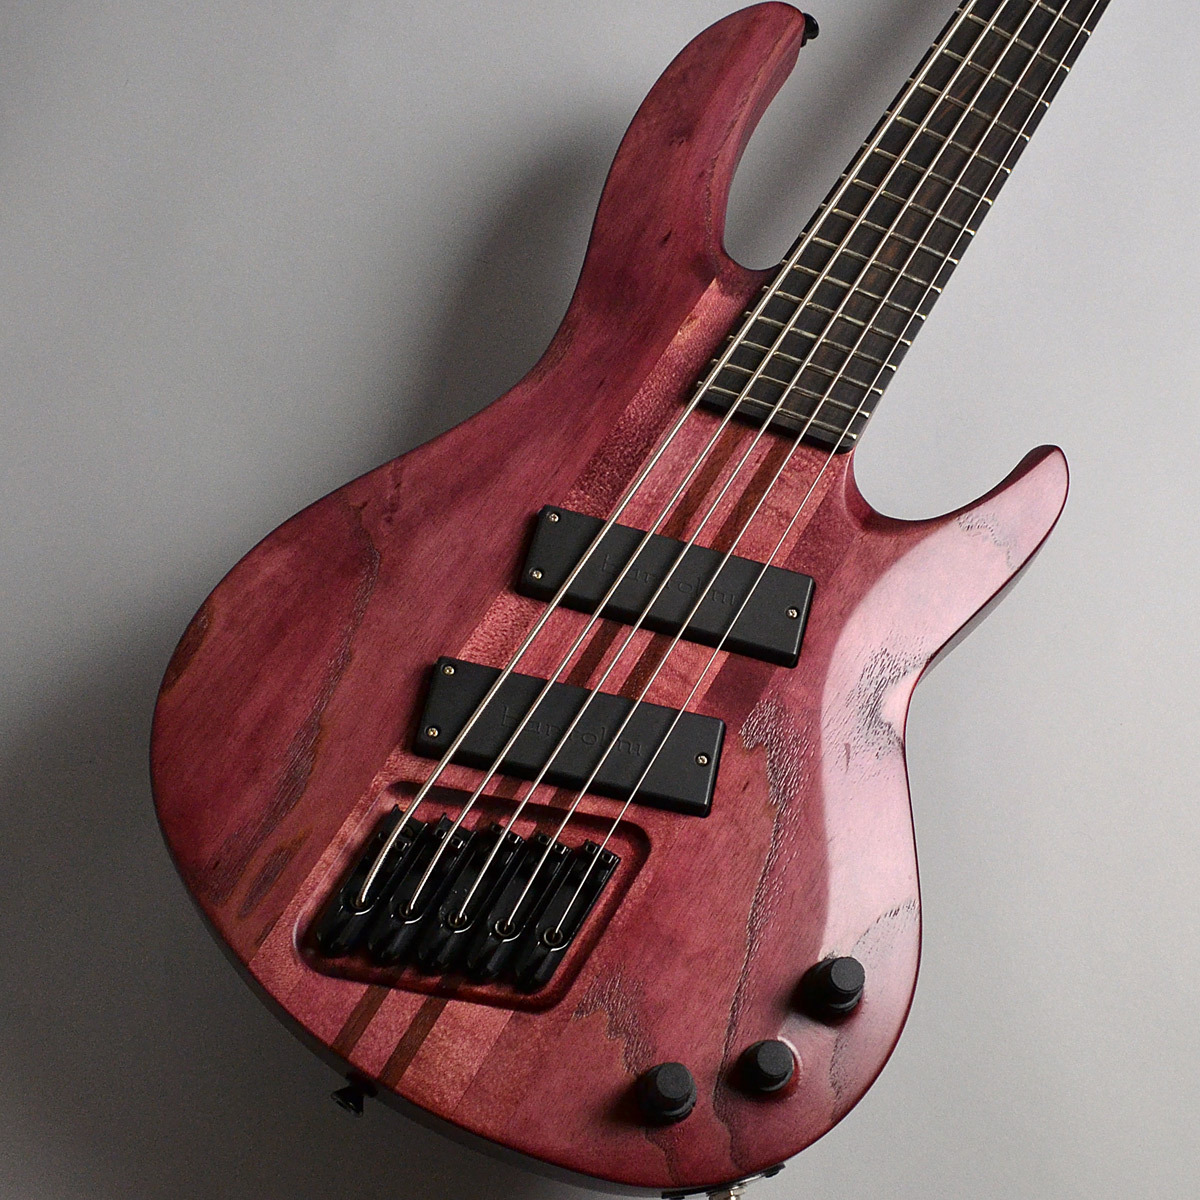 Strictly 7 Guitars Sidewinder5 T Fanned Fret/Blood Red Stain エレキベース(5弦) 【ストリクトリー7ギターズ】【新宿PePe店】